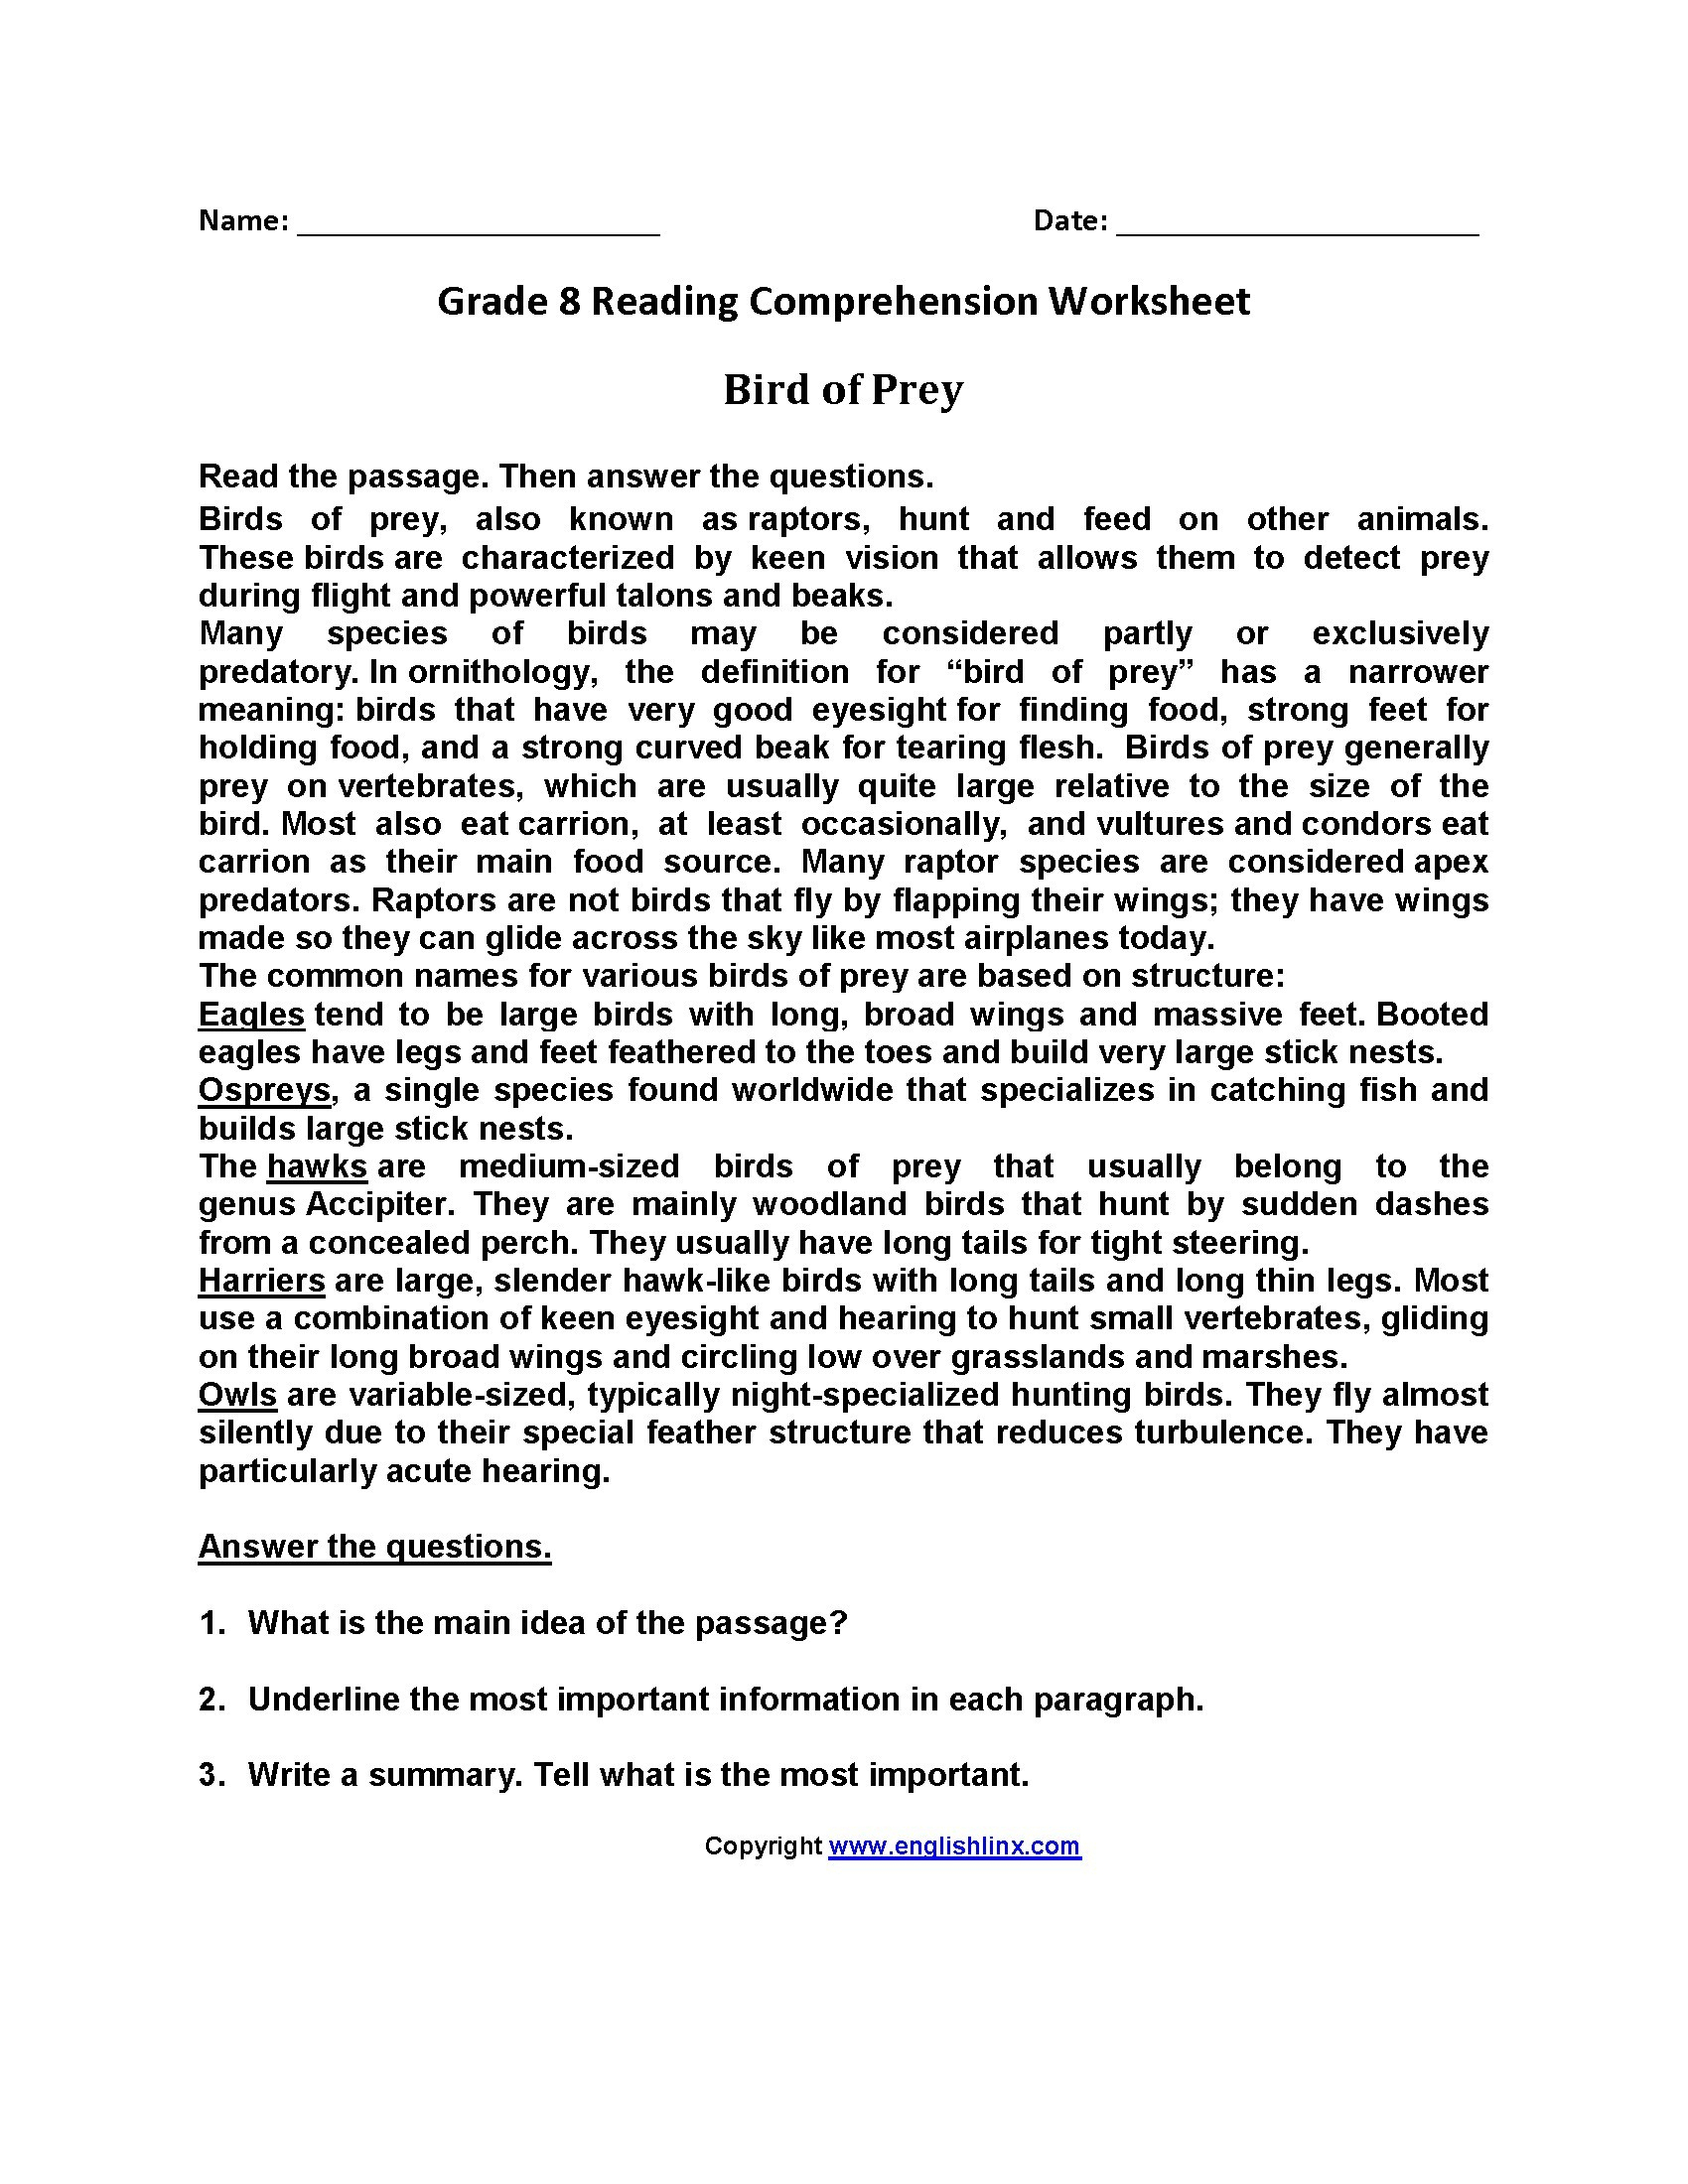 Worksheet : Free Printable Reading Comprehension Worksheets For 3Rd | Free Printable Reading Comprehension Worksheets For Adults